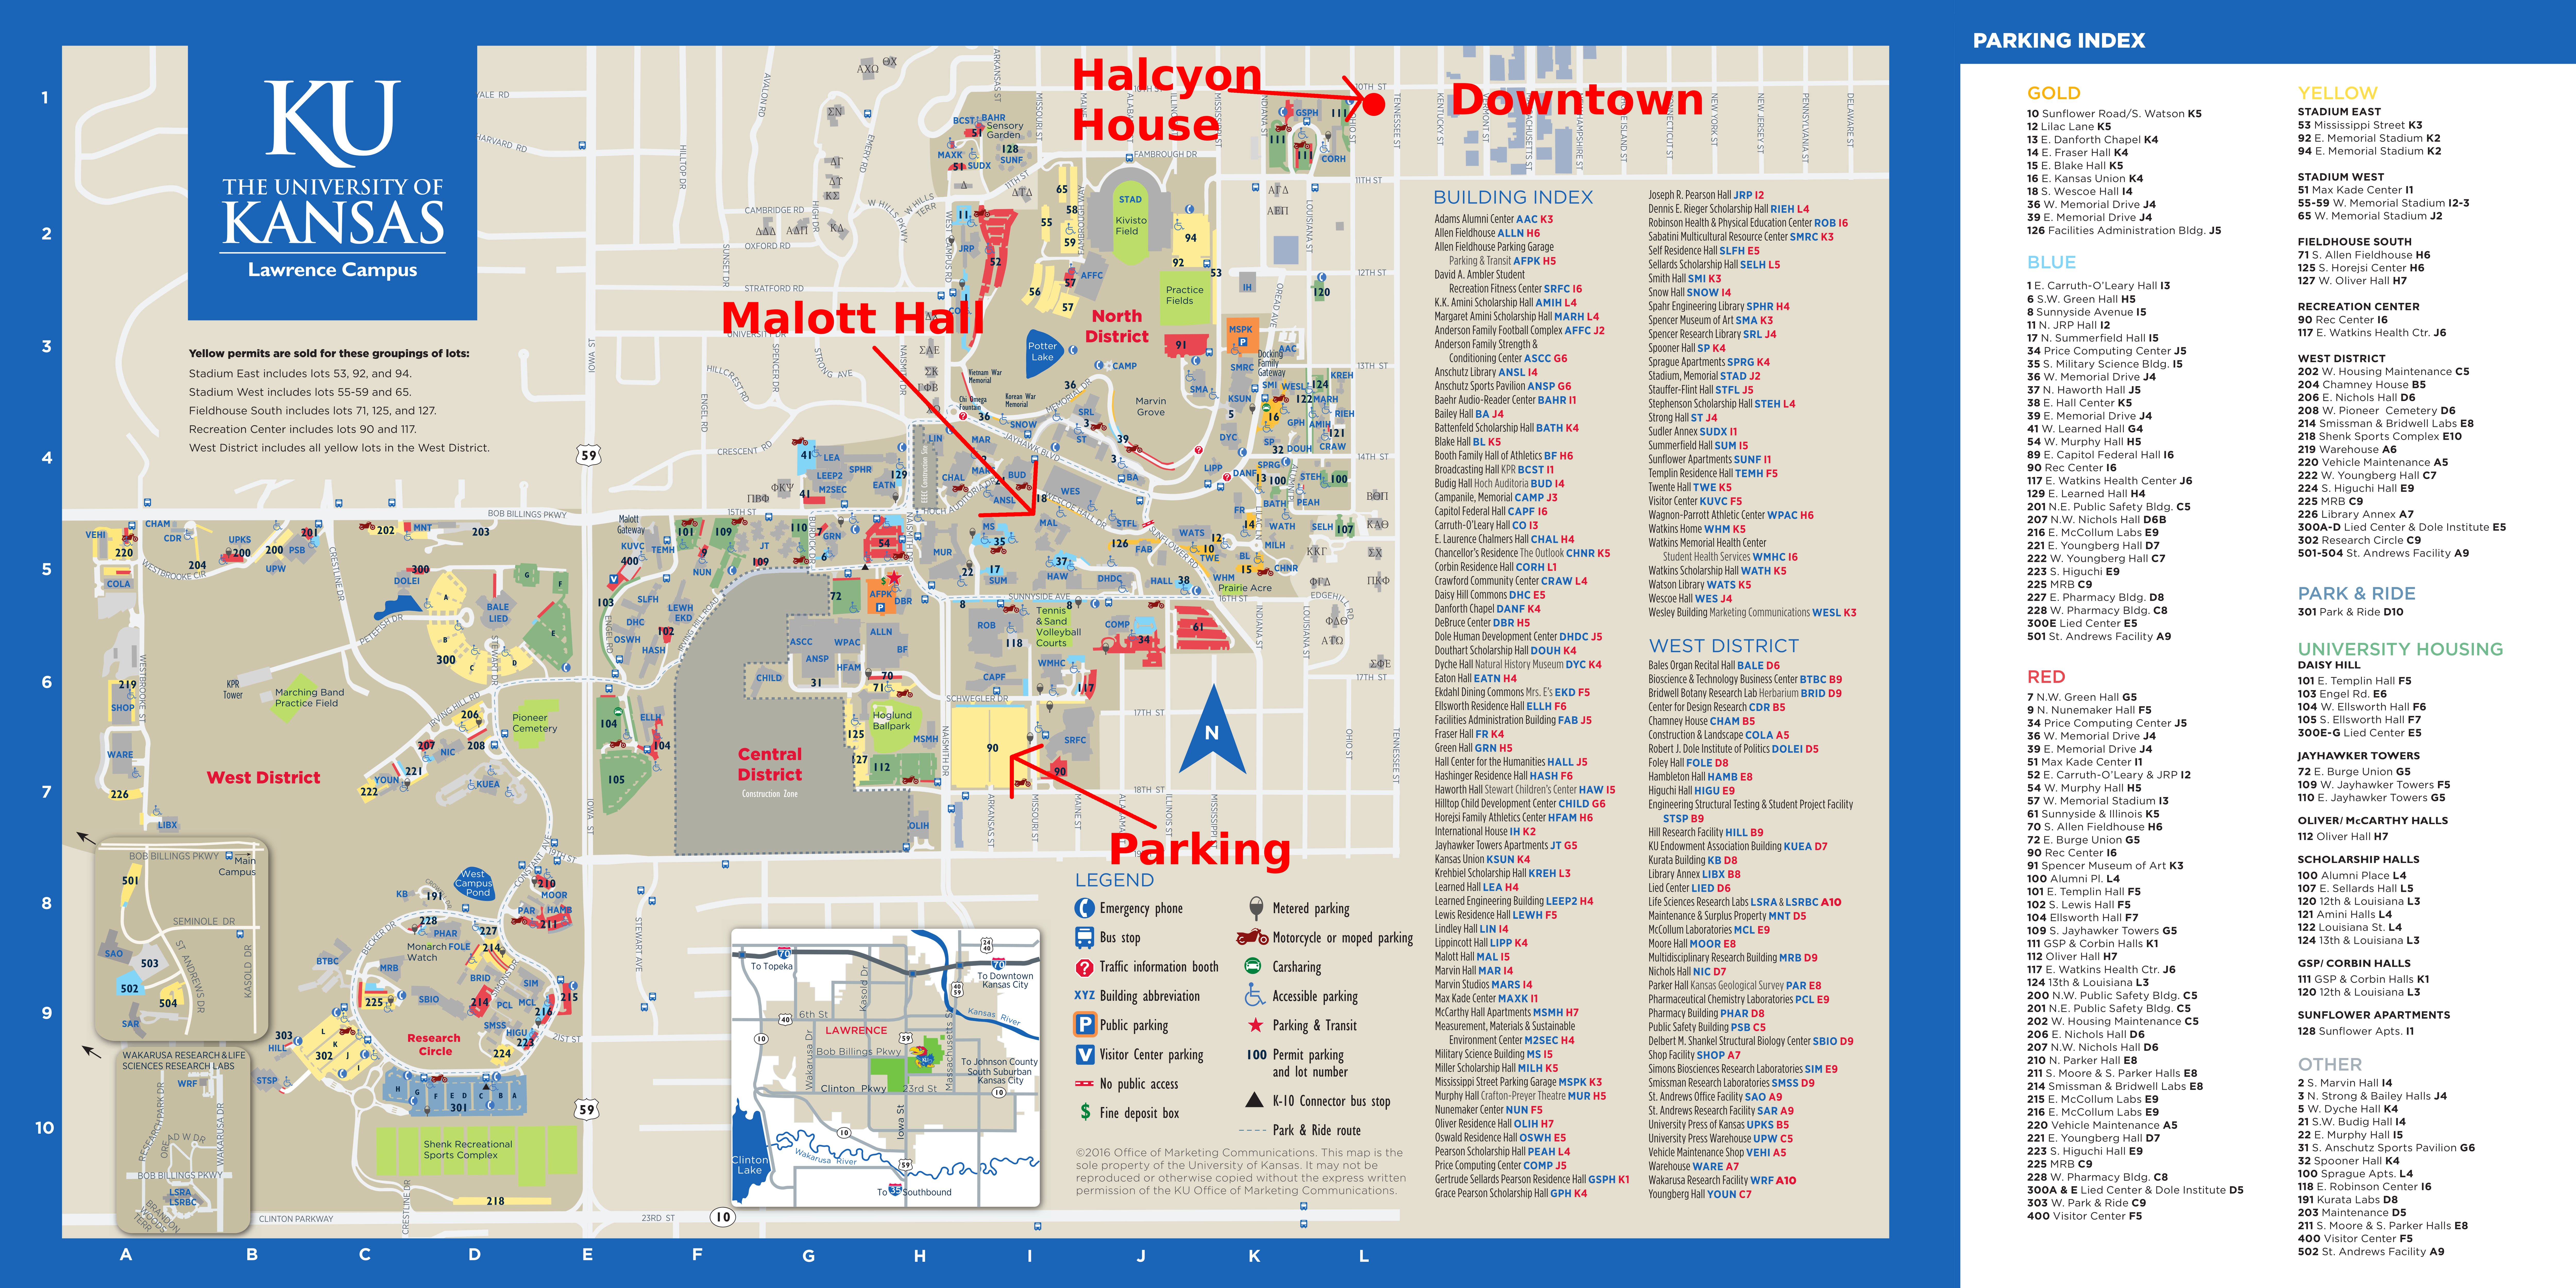 map of ku campus Particle Physics On The Plains 30 September 2017 Parking And map of ku campus